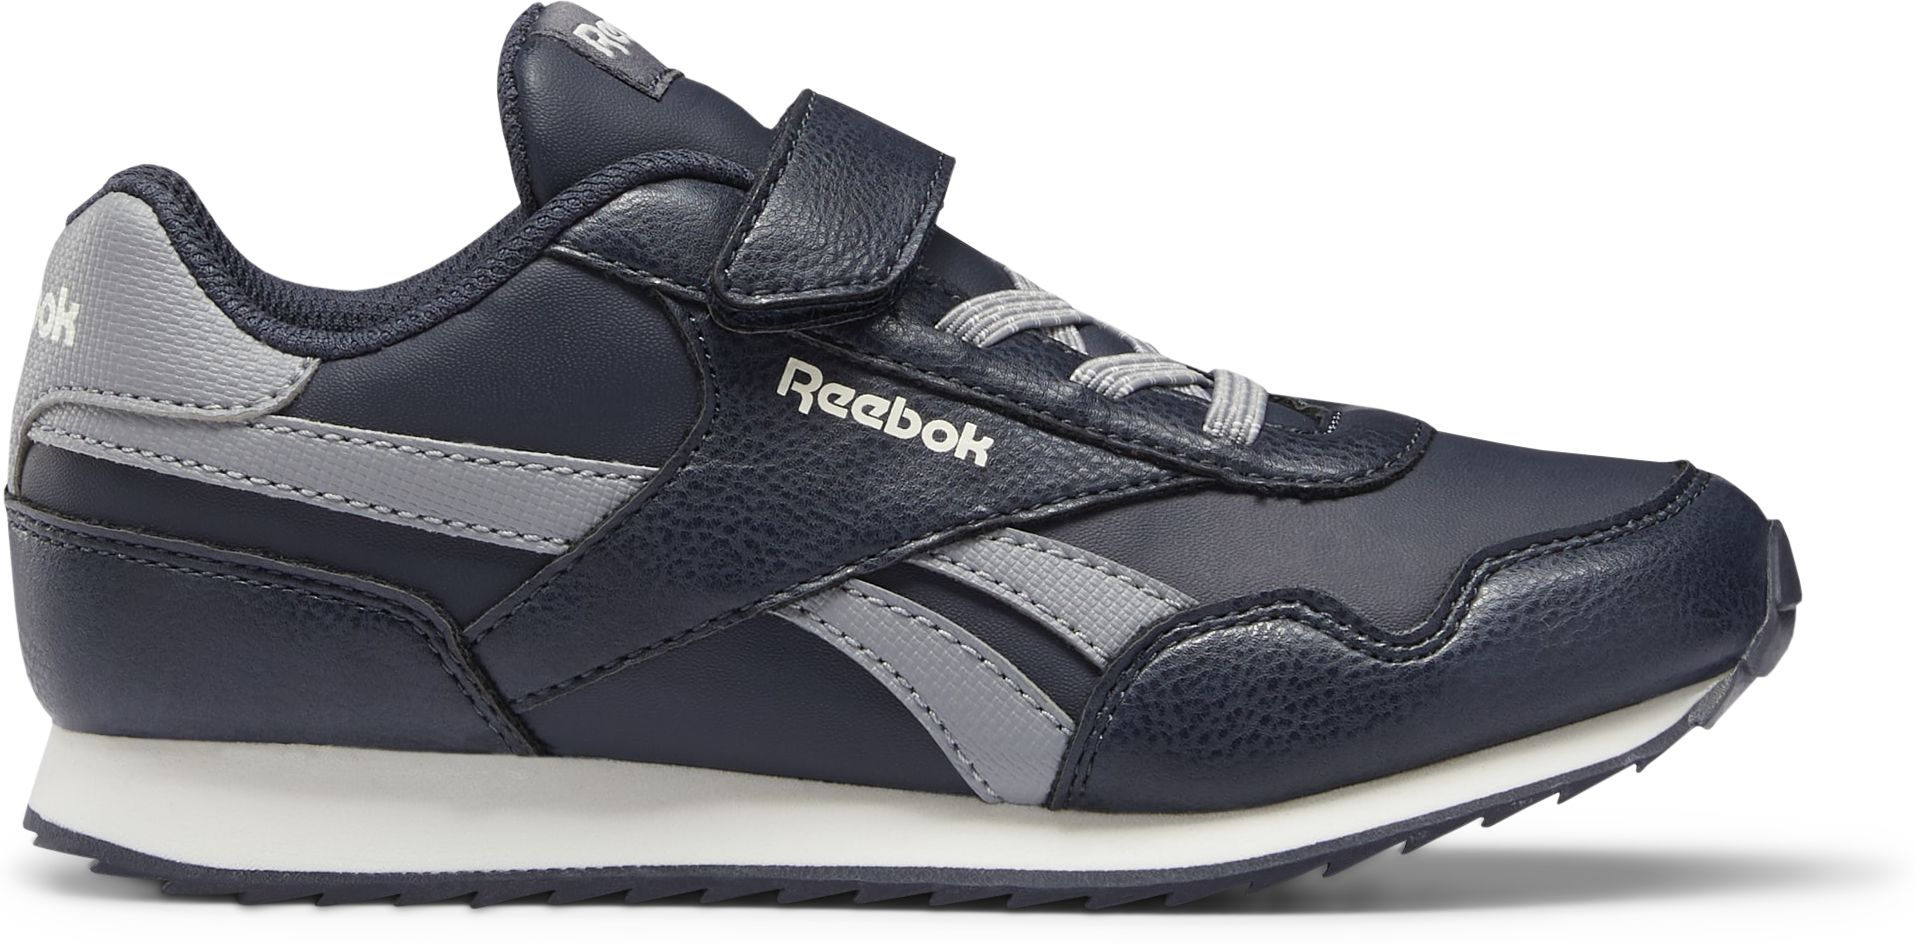 356072103110, Royal Classic Jogger 3 Shoes, REEBOK, Detail